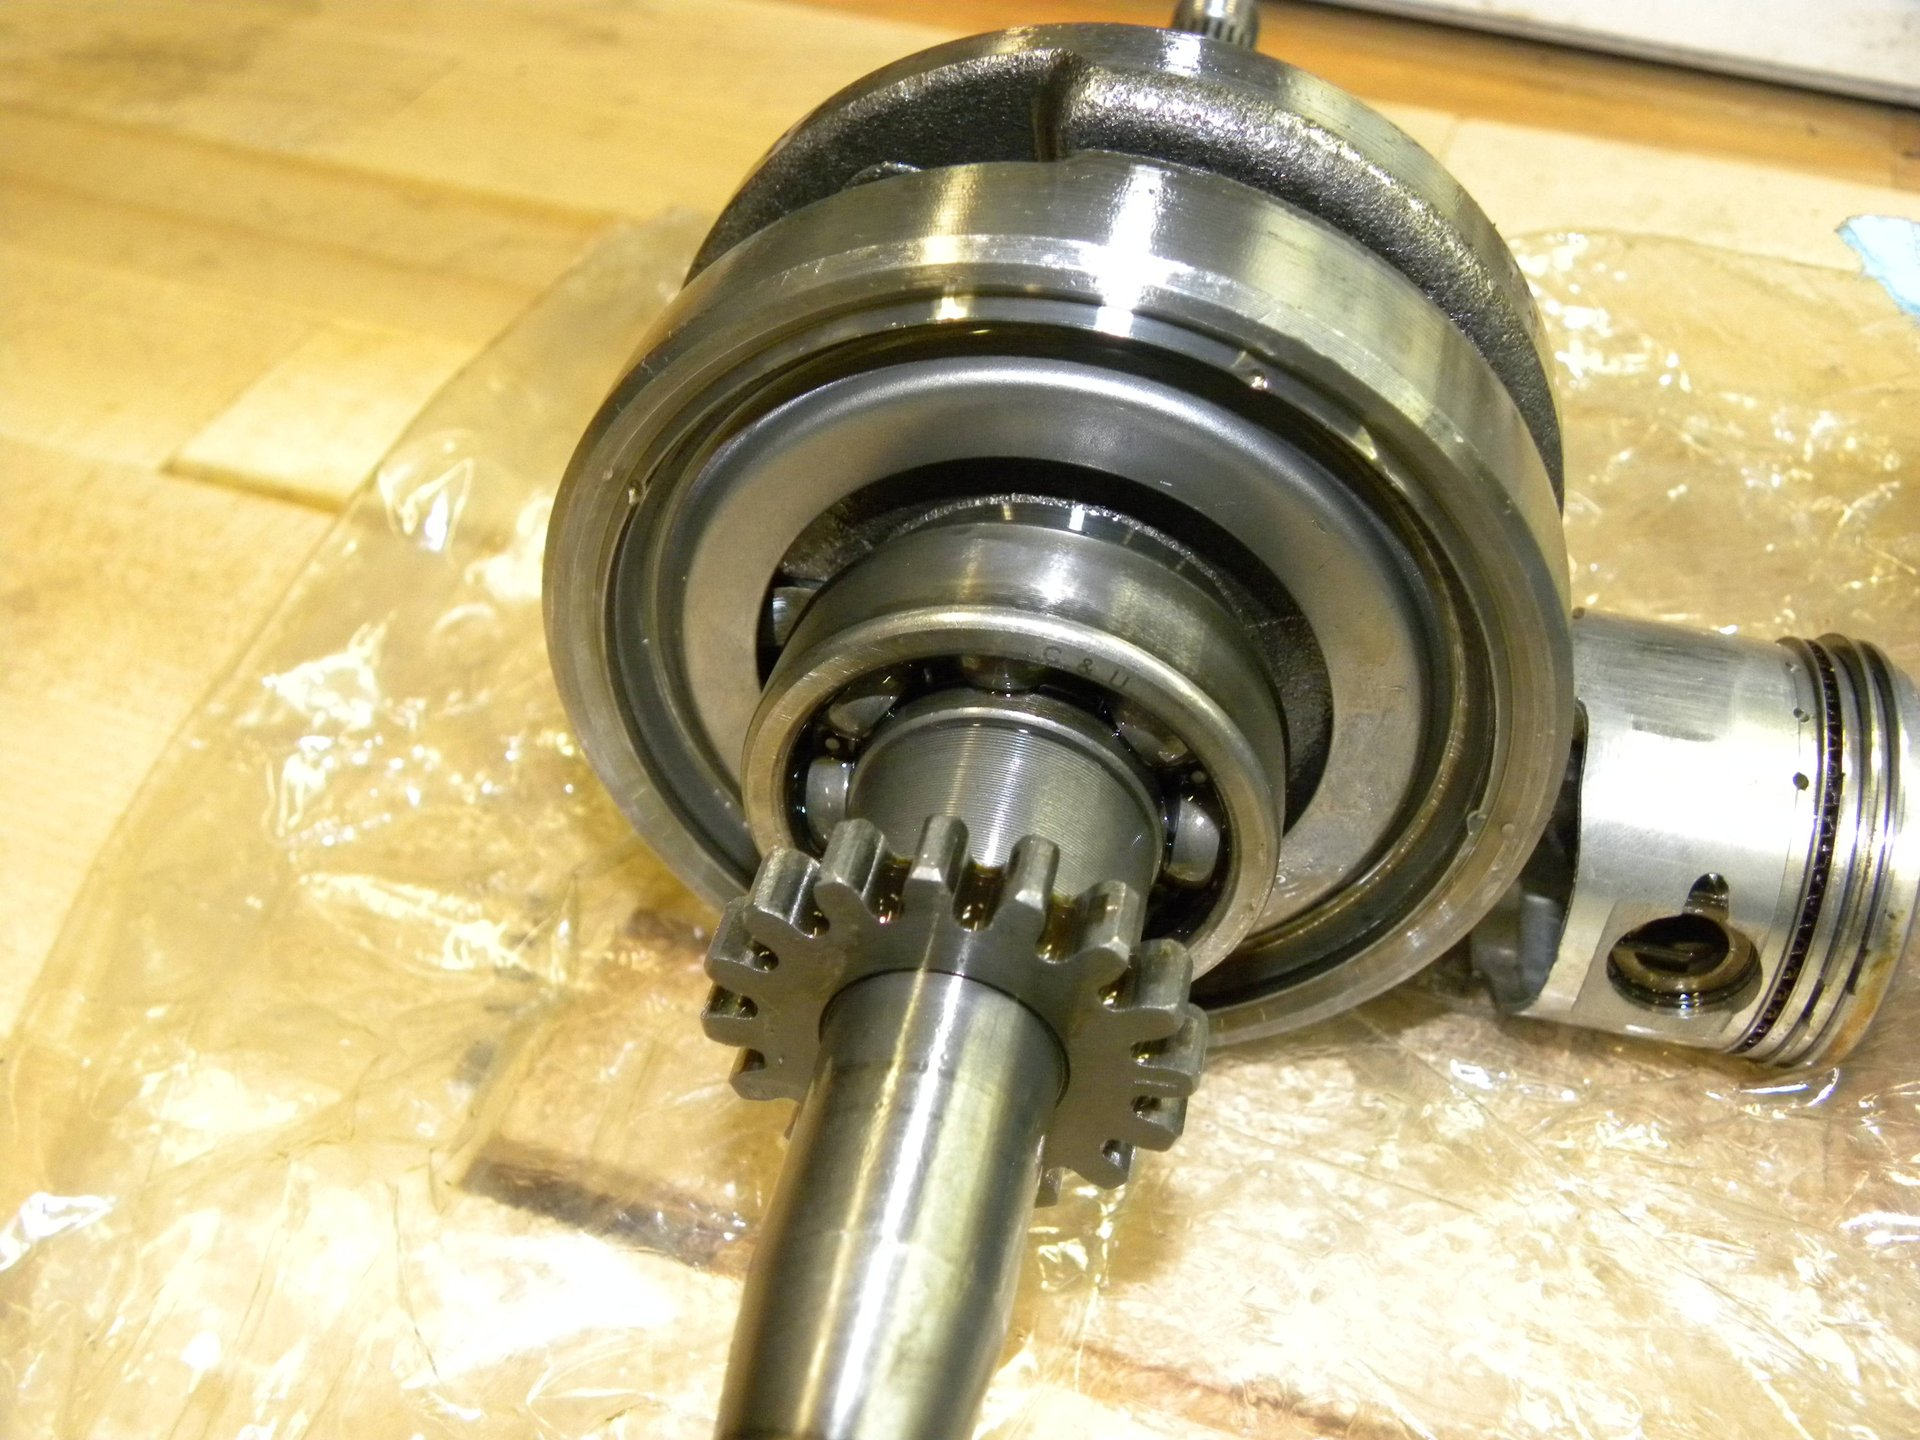 139QMB 66cc GY6 engine build | PlanetMinis Forums